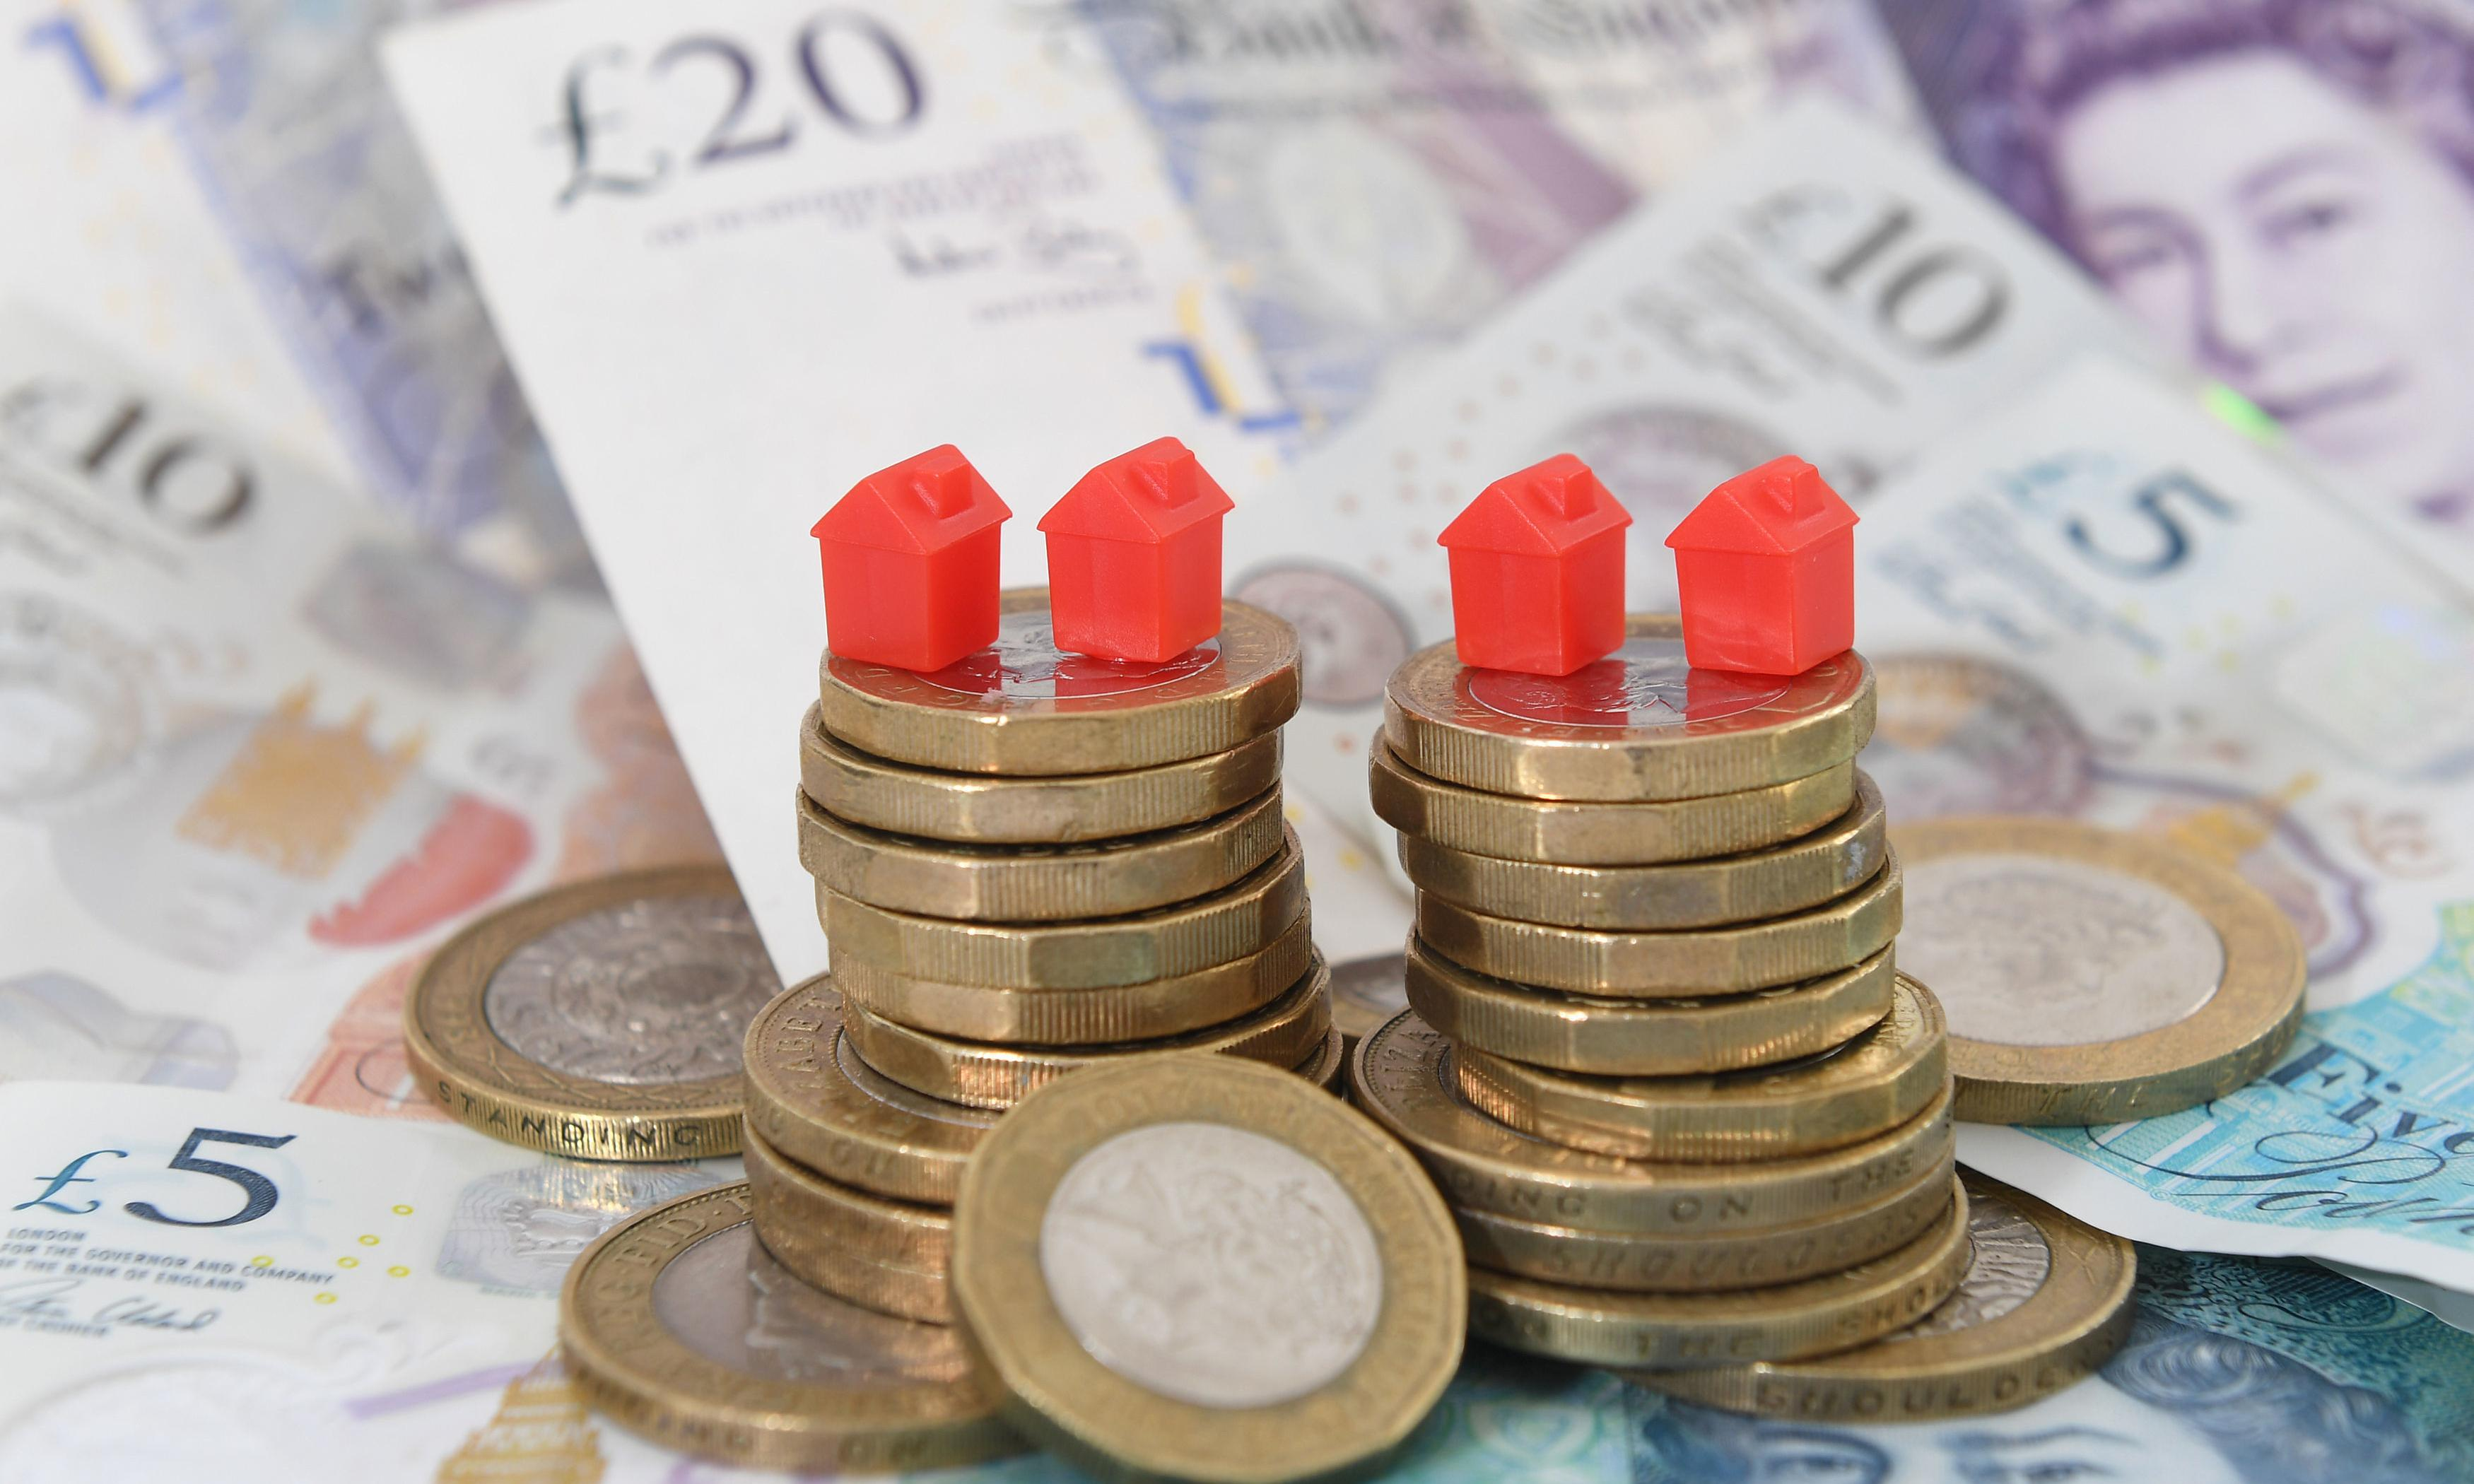 If I sell a buy-to-let property and buy another, can I defer CGT?